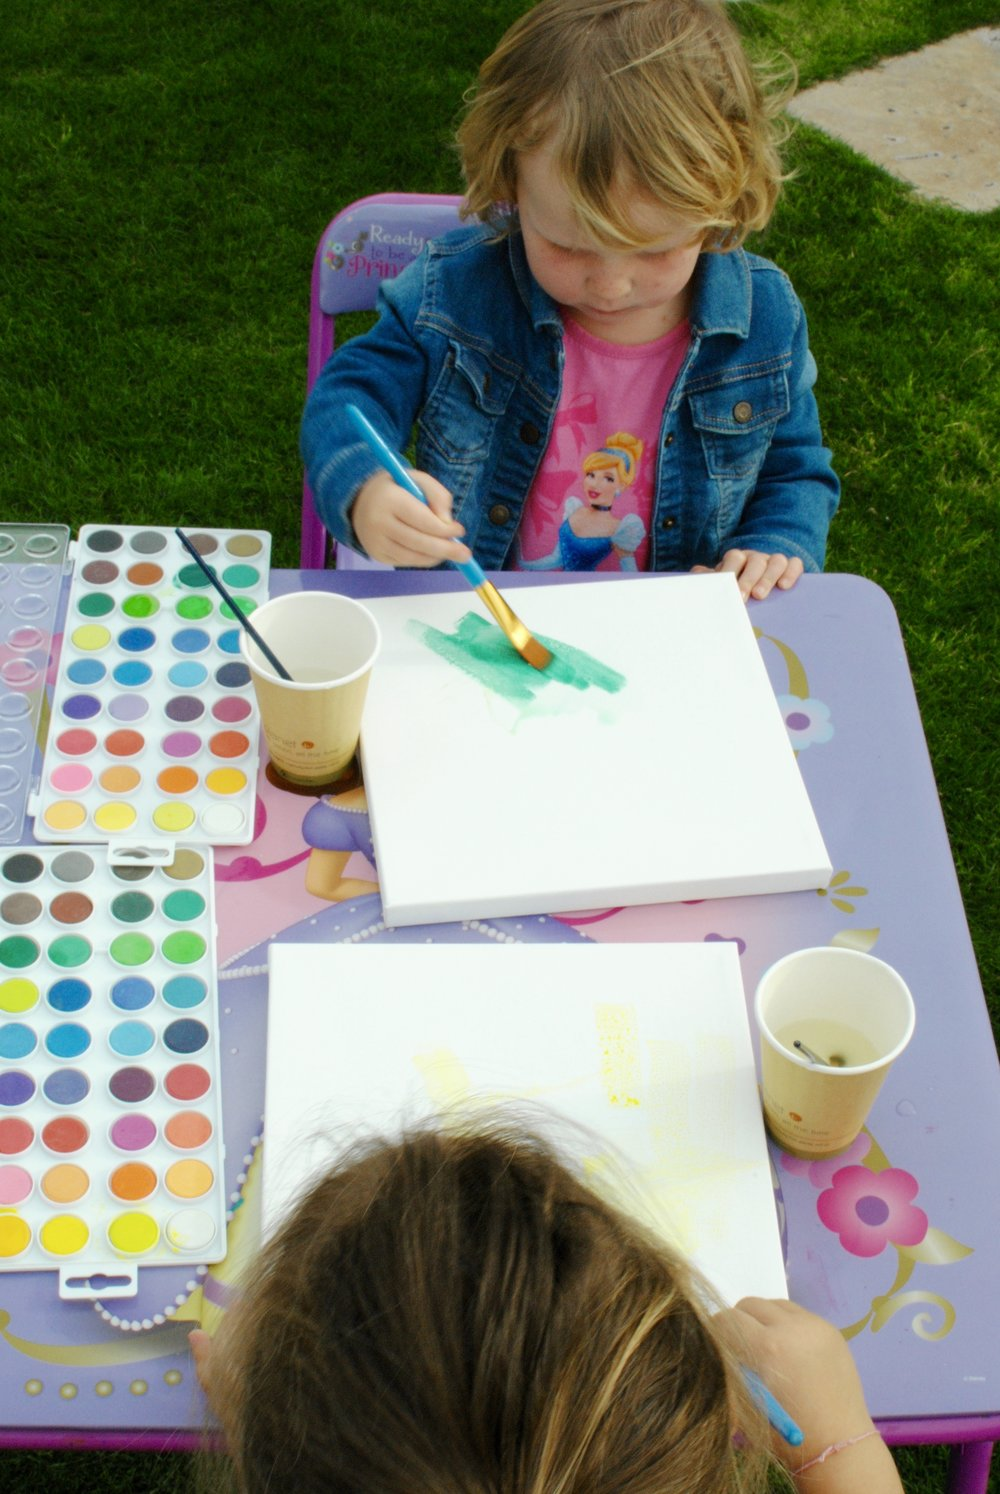 Water painting playdate with American-Chilean cousin, Olive.